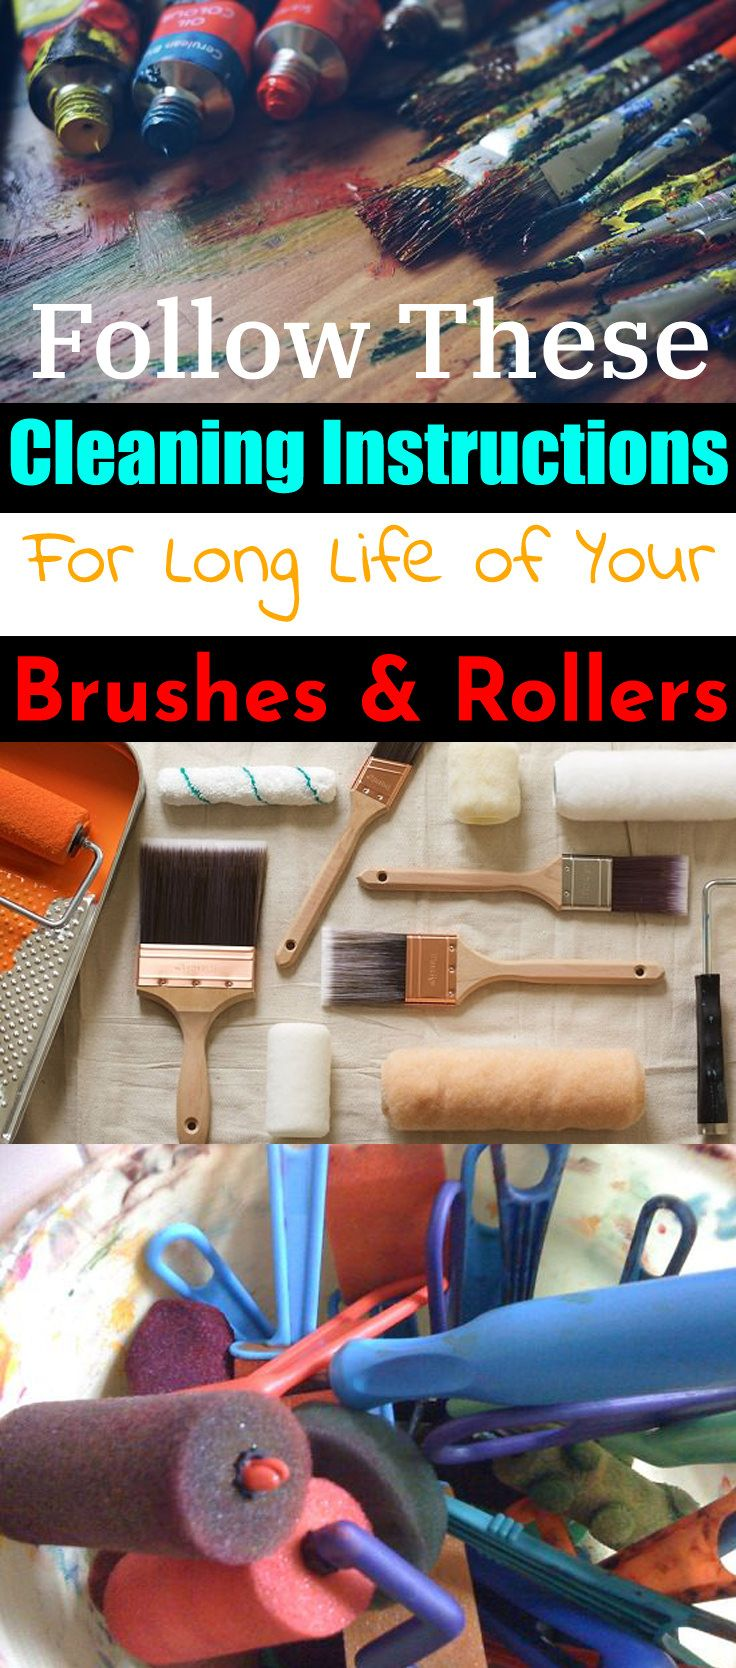 Follow These Cleaning Instructions For Long Life of Your